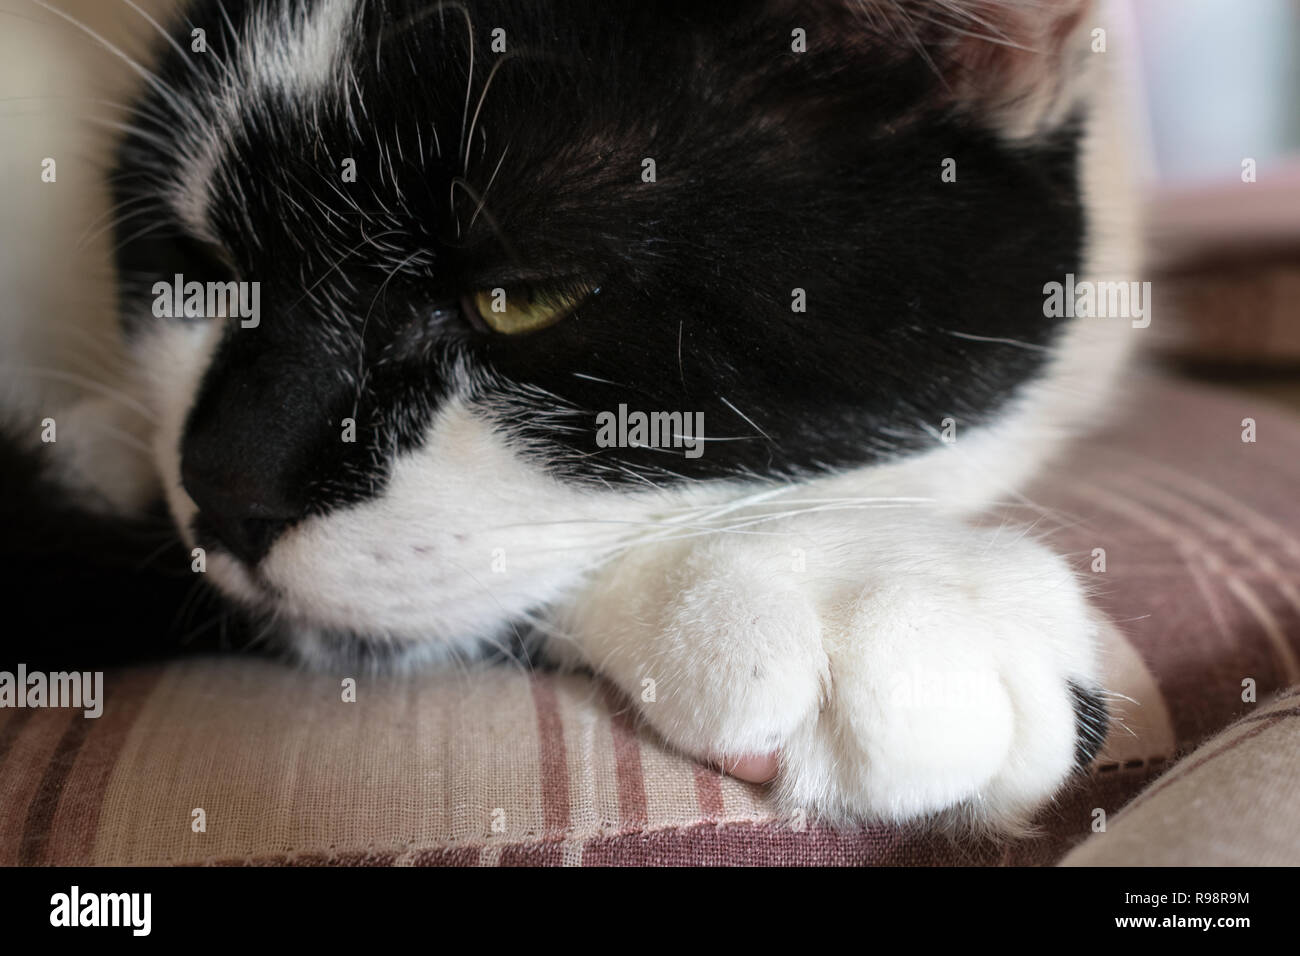 black and white cat sleepy on a pillow - Stock Image